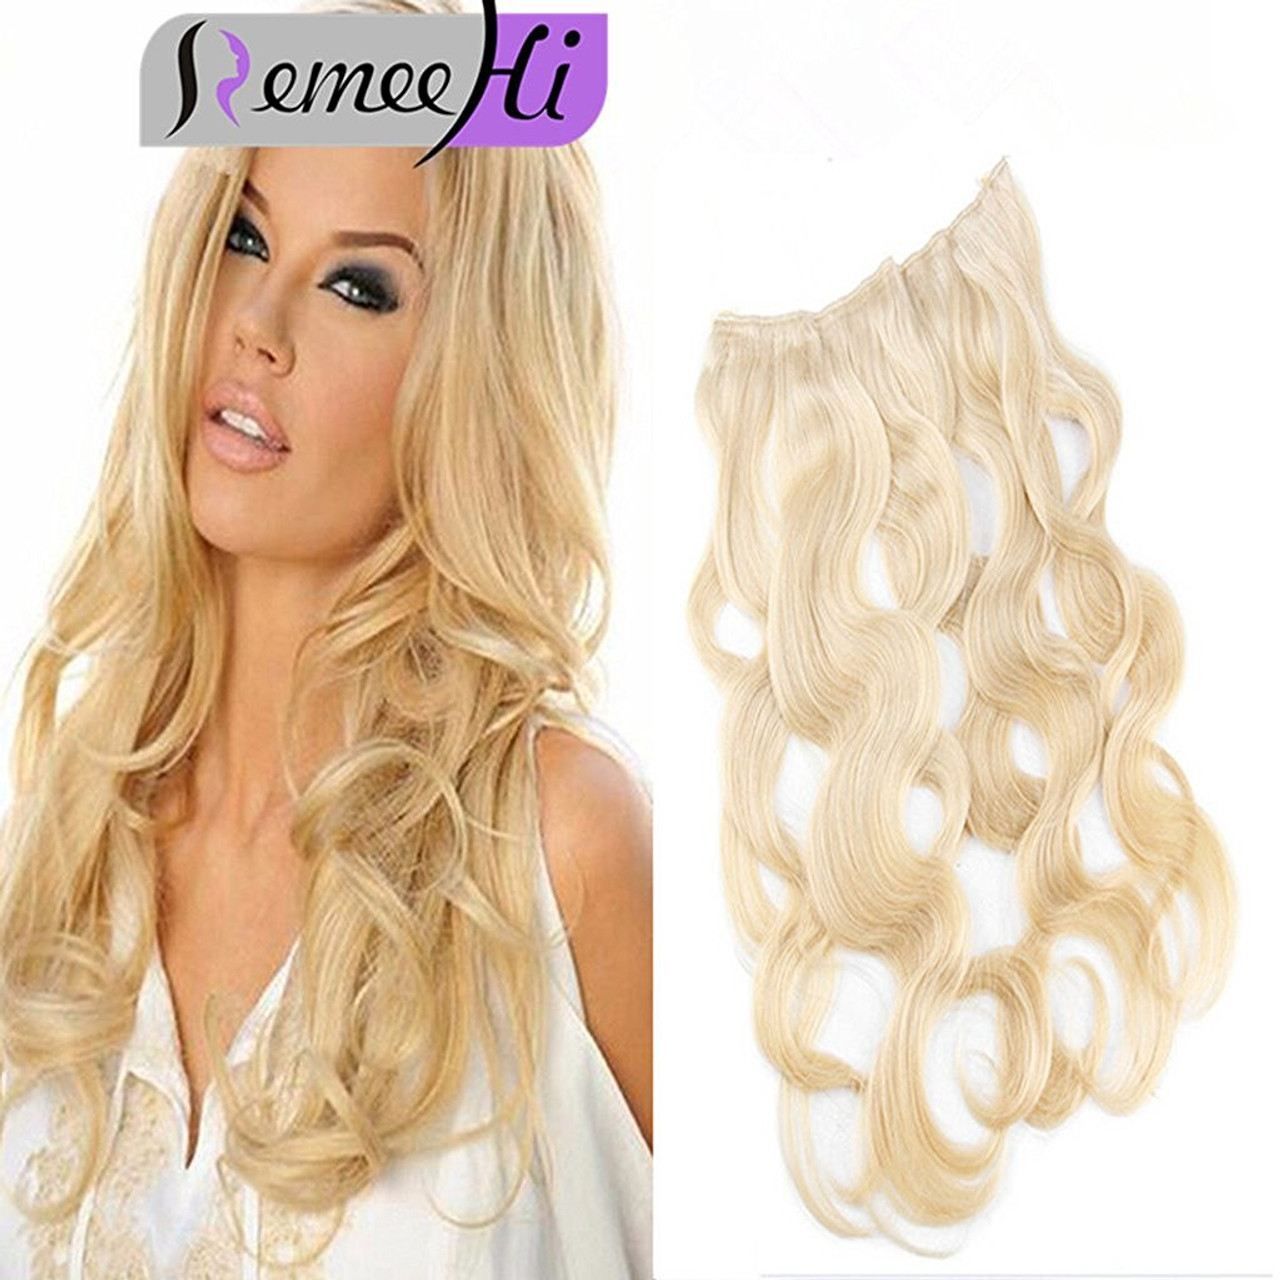 Remeehi body wave secret halo hair extensions invisible wire flip remeehi body wave secret halo hair extensions invisible wire flip remy human hair extensions 80g width pmusecretfo Choice Image